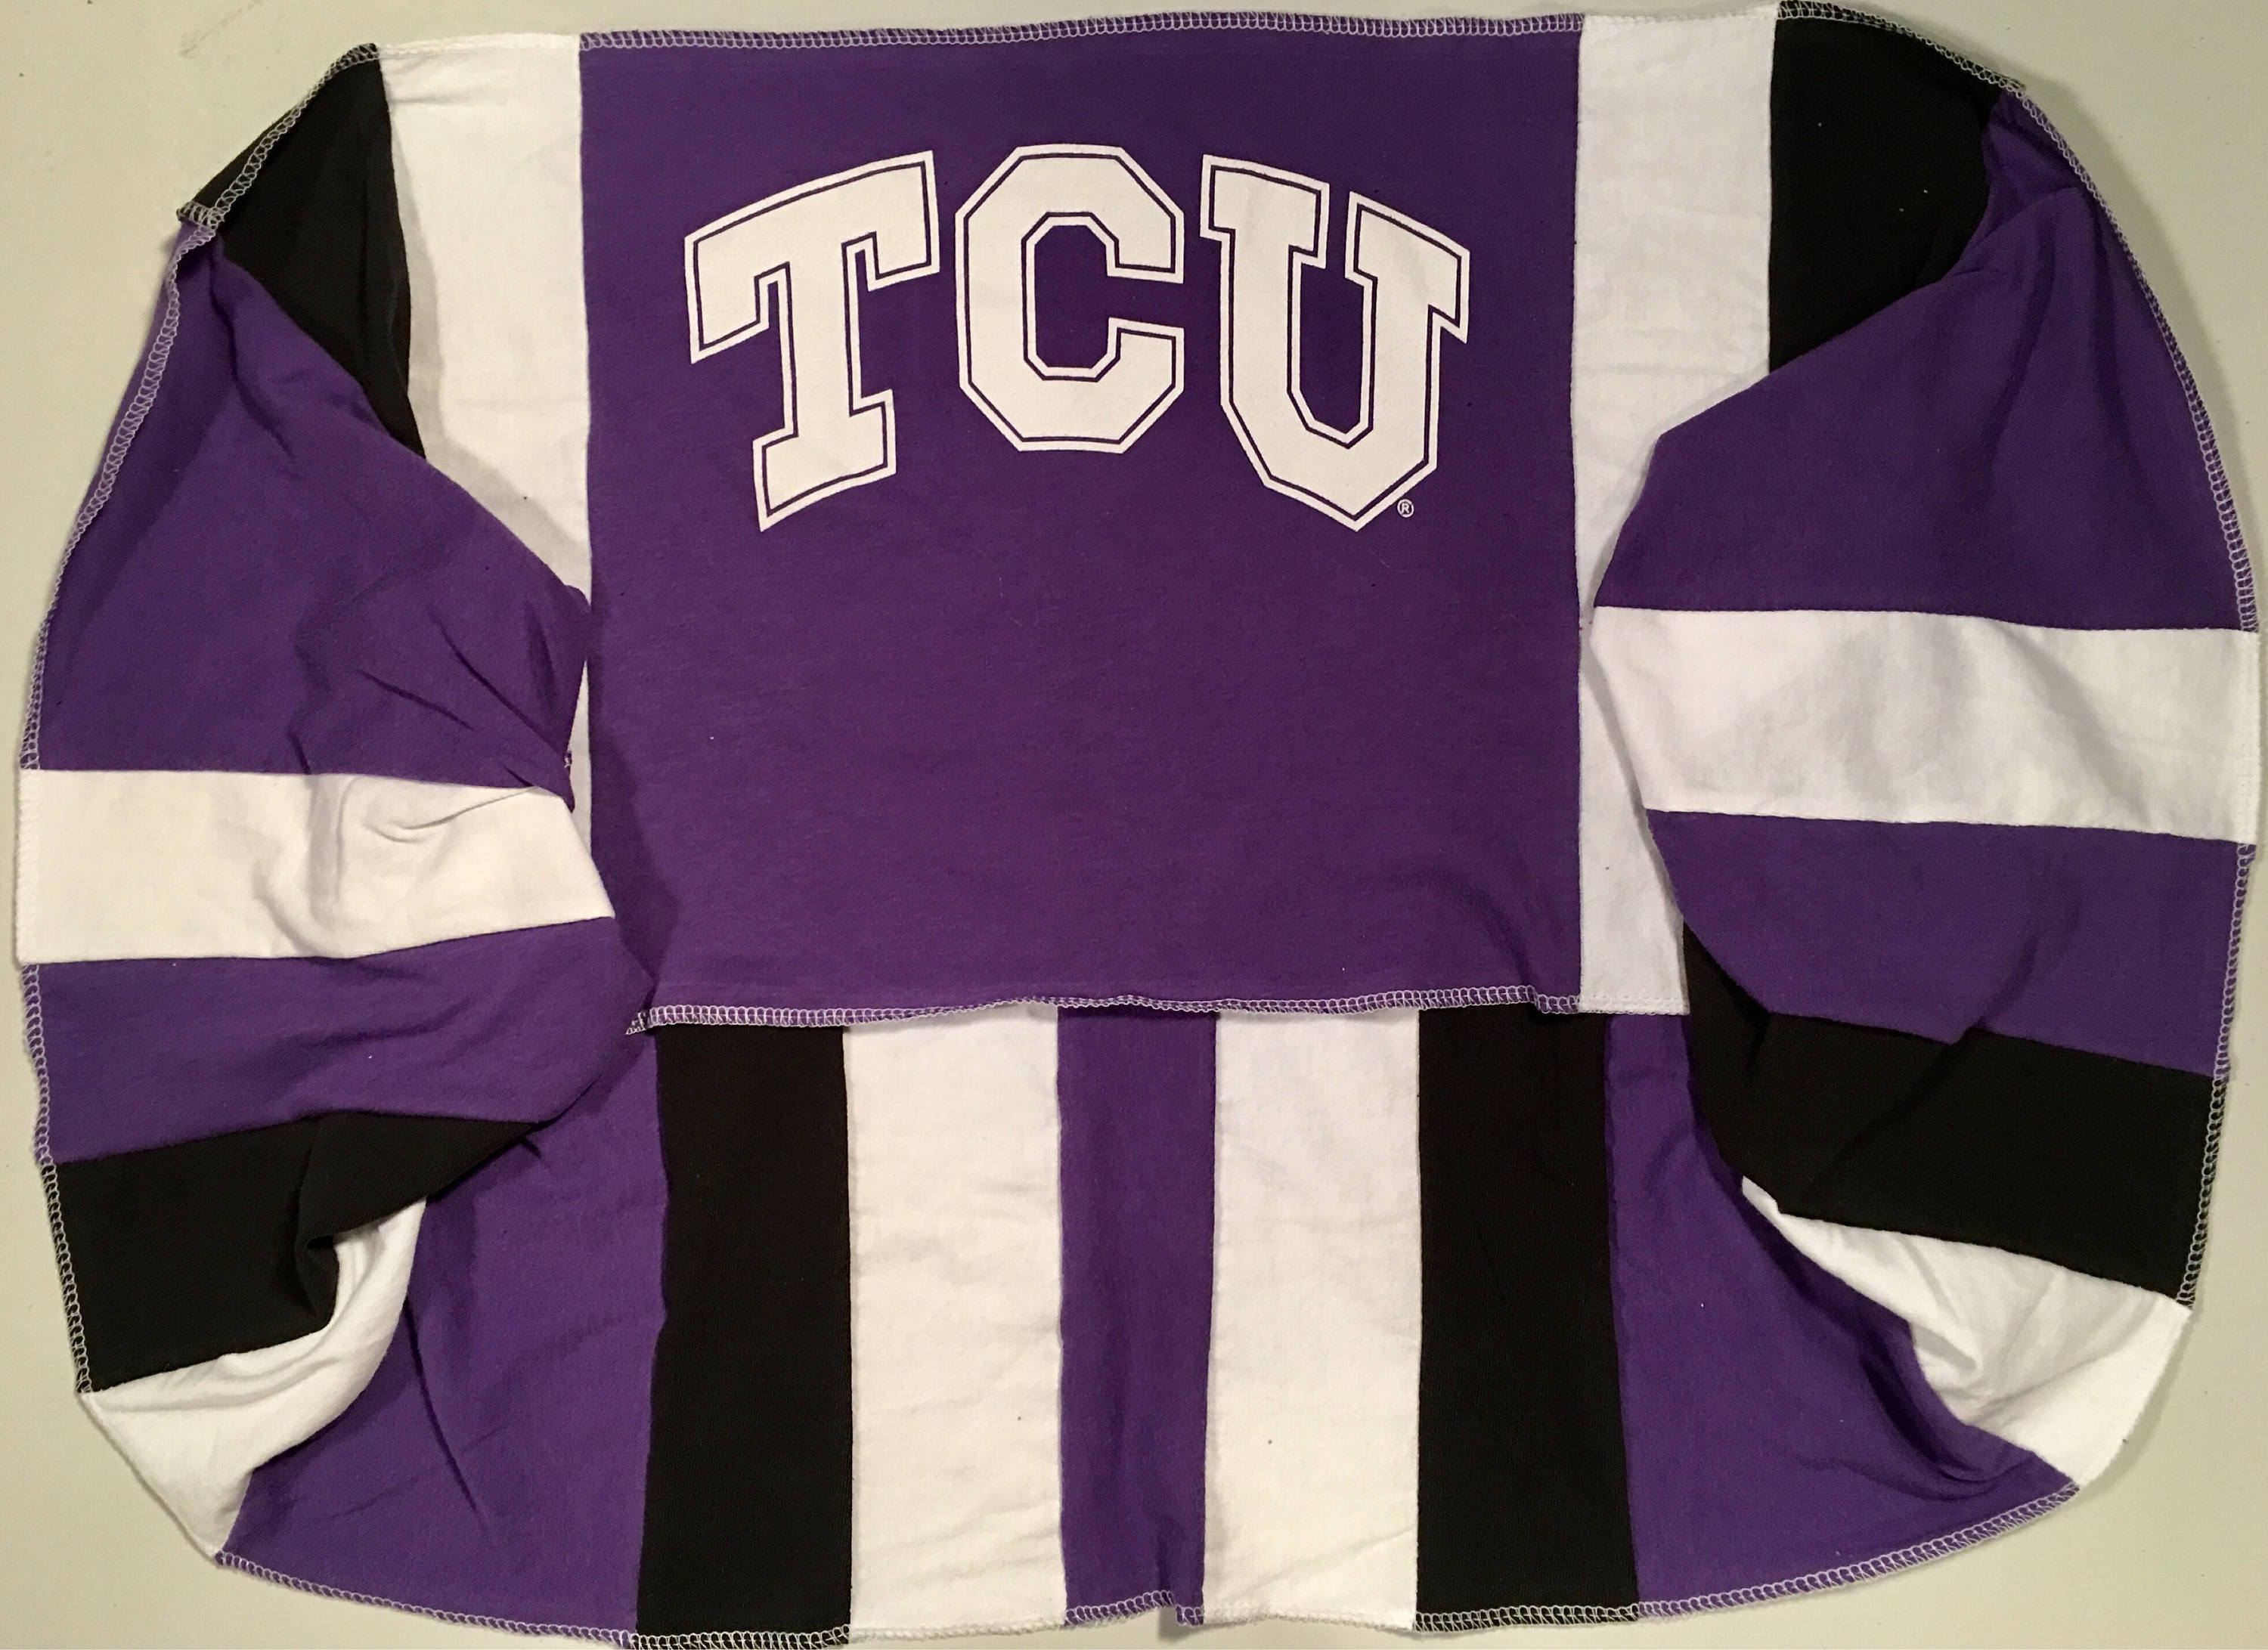 Infinity Scarf TCU TEXAS Christian University Horned FROGS Team Spirit Upcycled Woman's Loop T-Shirt New Handmade Scarves